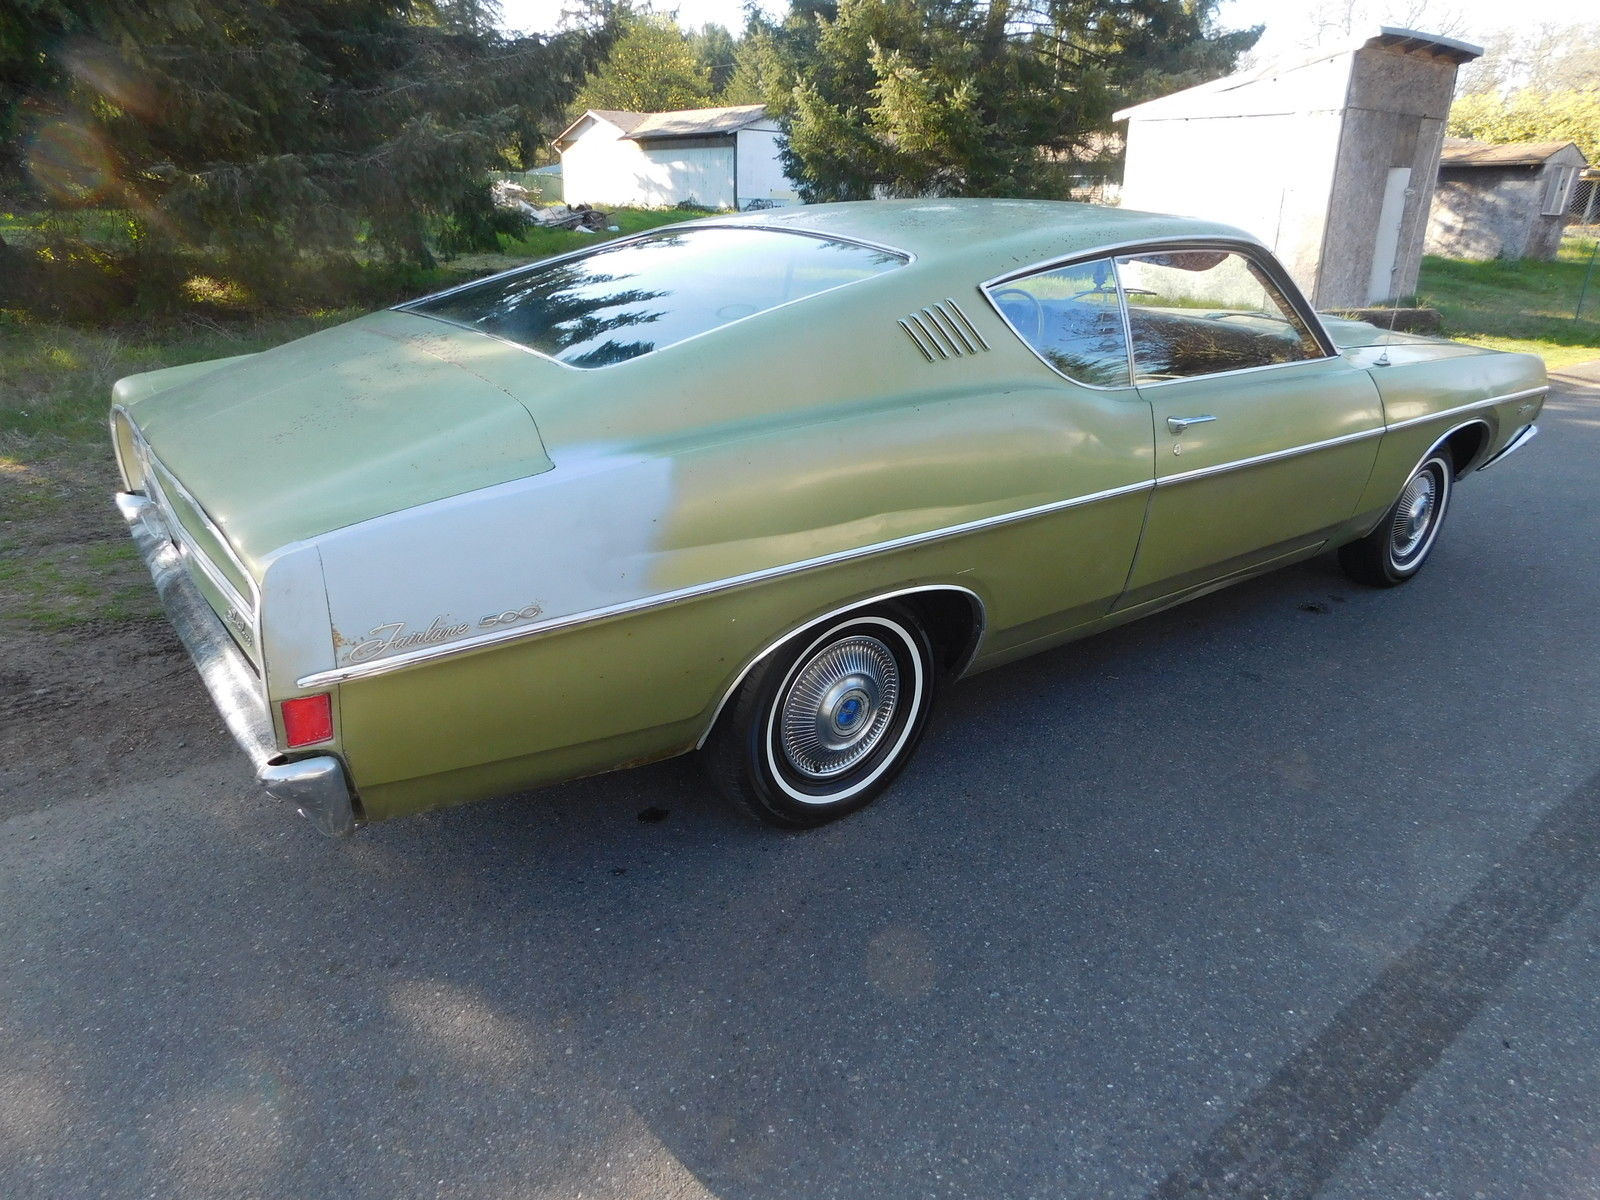 Daily Turismo: Auction Watch: 1968 Ford Fairlane 500 Fastback